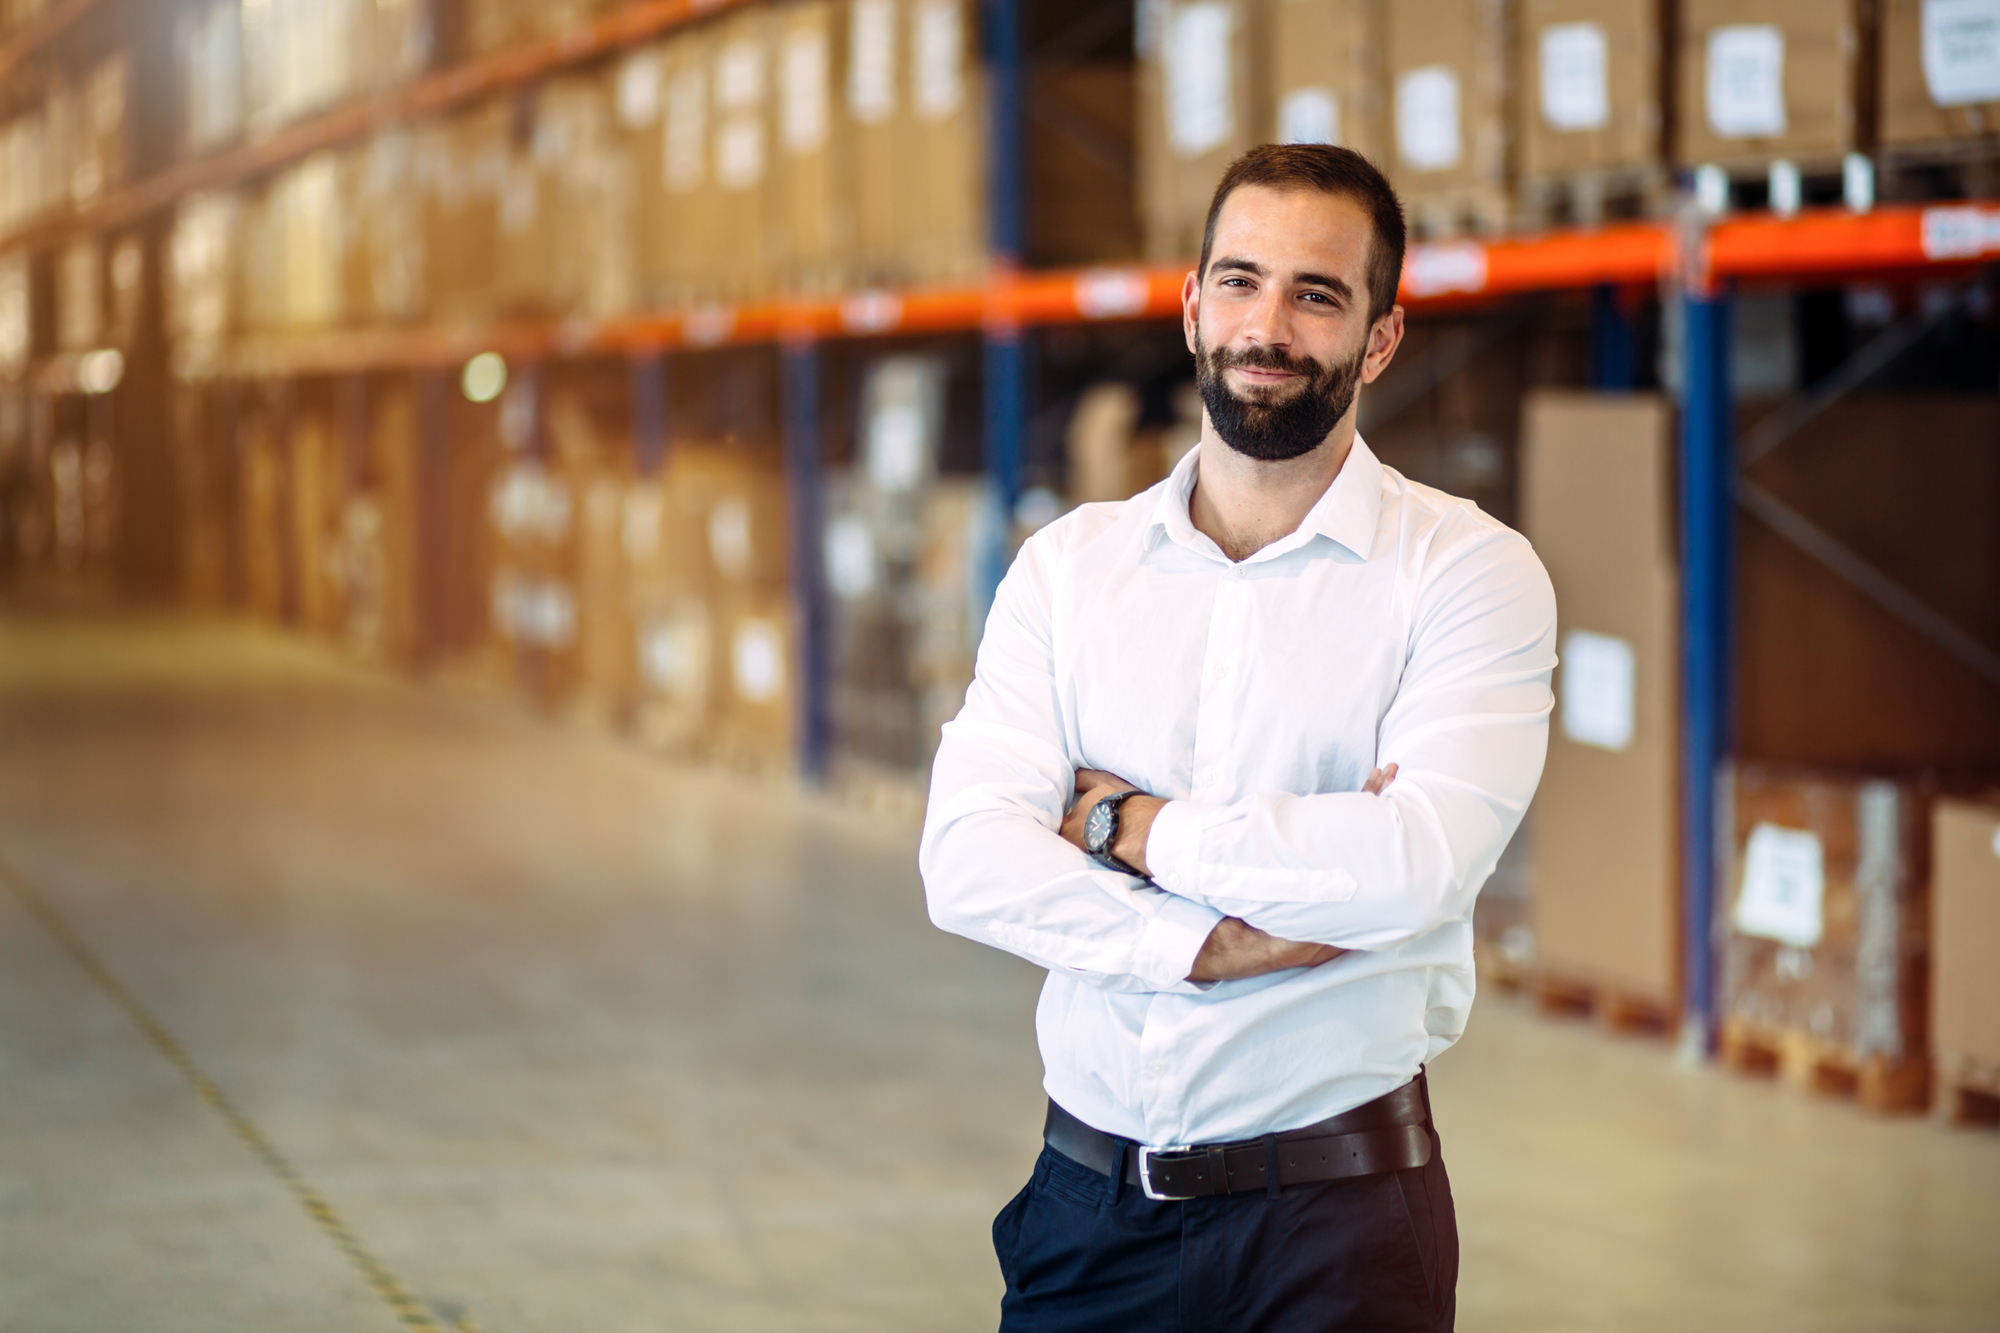 Logistics professional stands in a warehouse